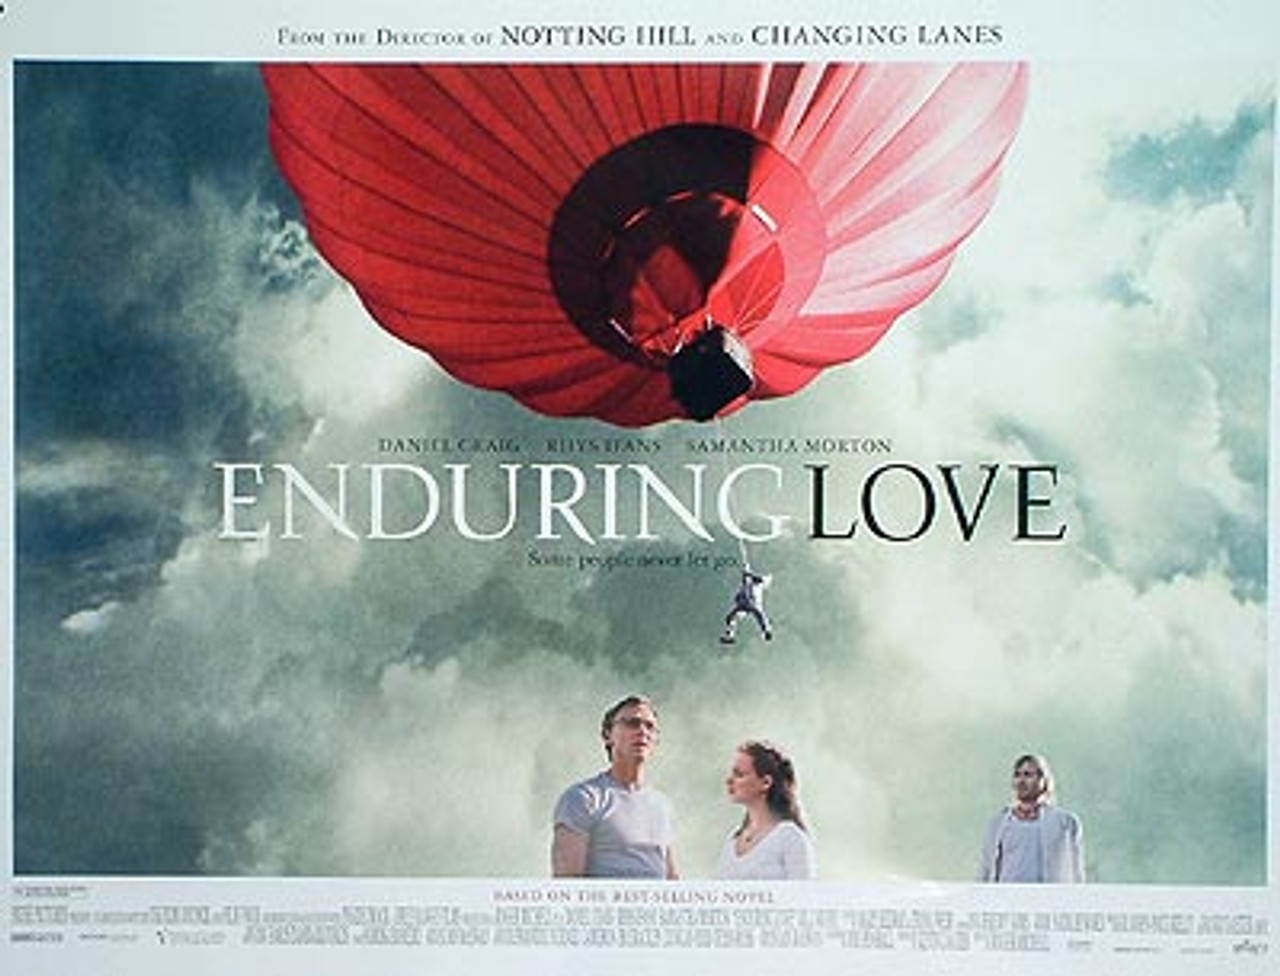 ENDURING LOVE (DOUBLE SIDED) POSTER buy movie posters at Starstills.com  (SSE2002-788812)